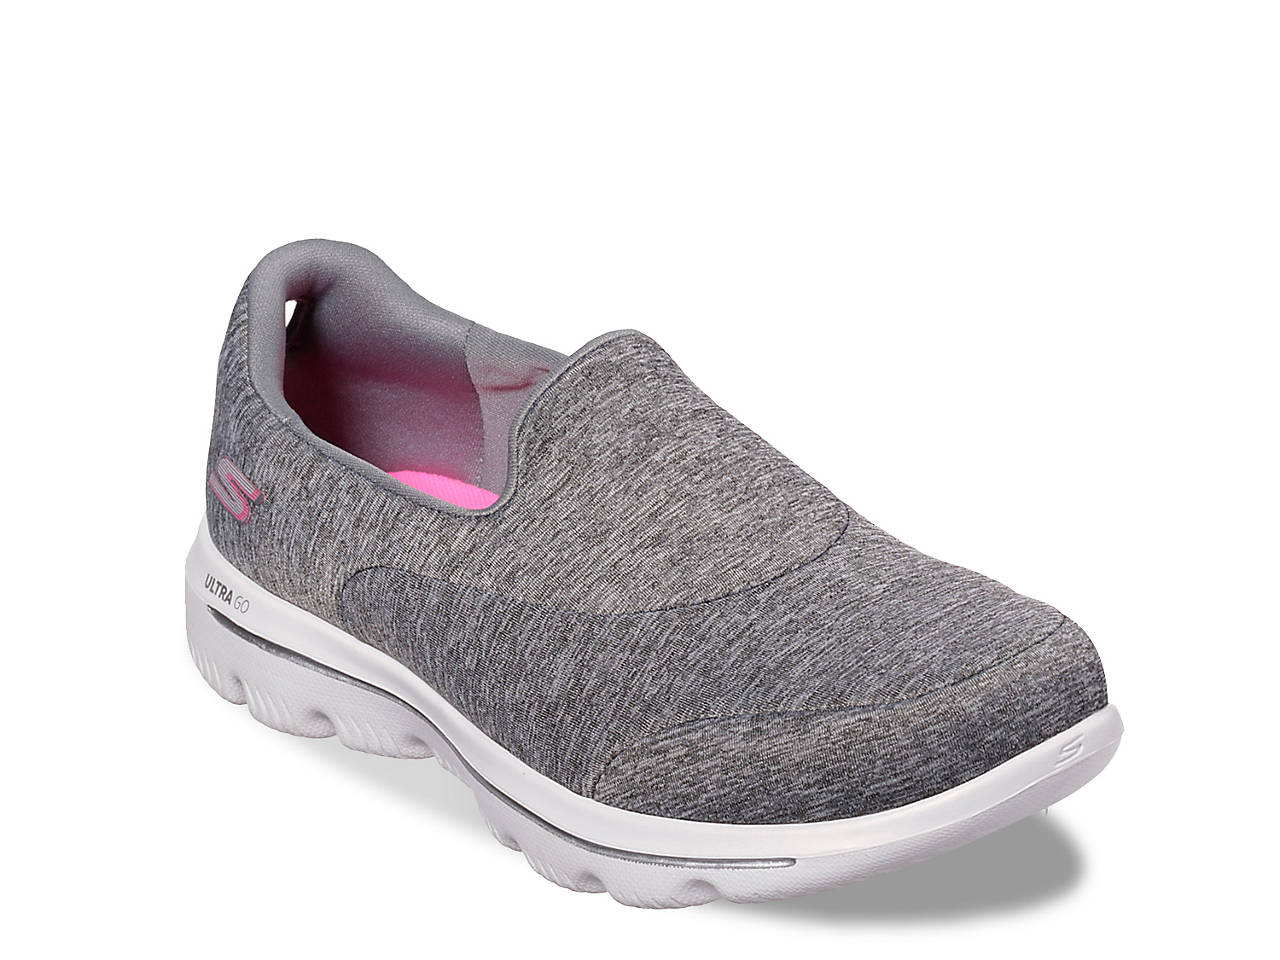 skechers on the go women's